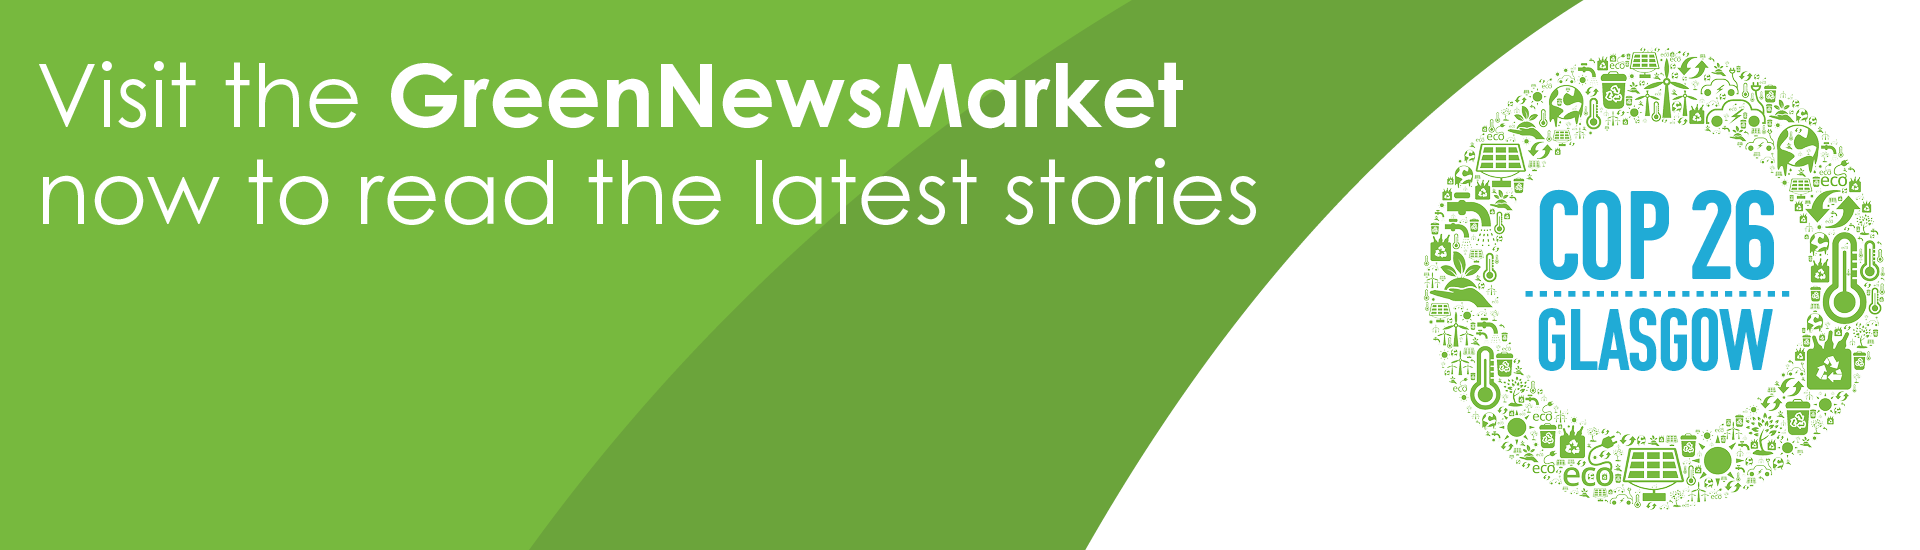 Visit the GreenNewsMarket to read the latest stories